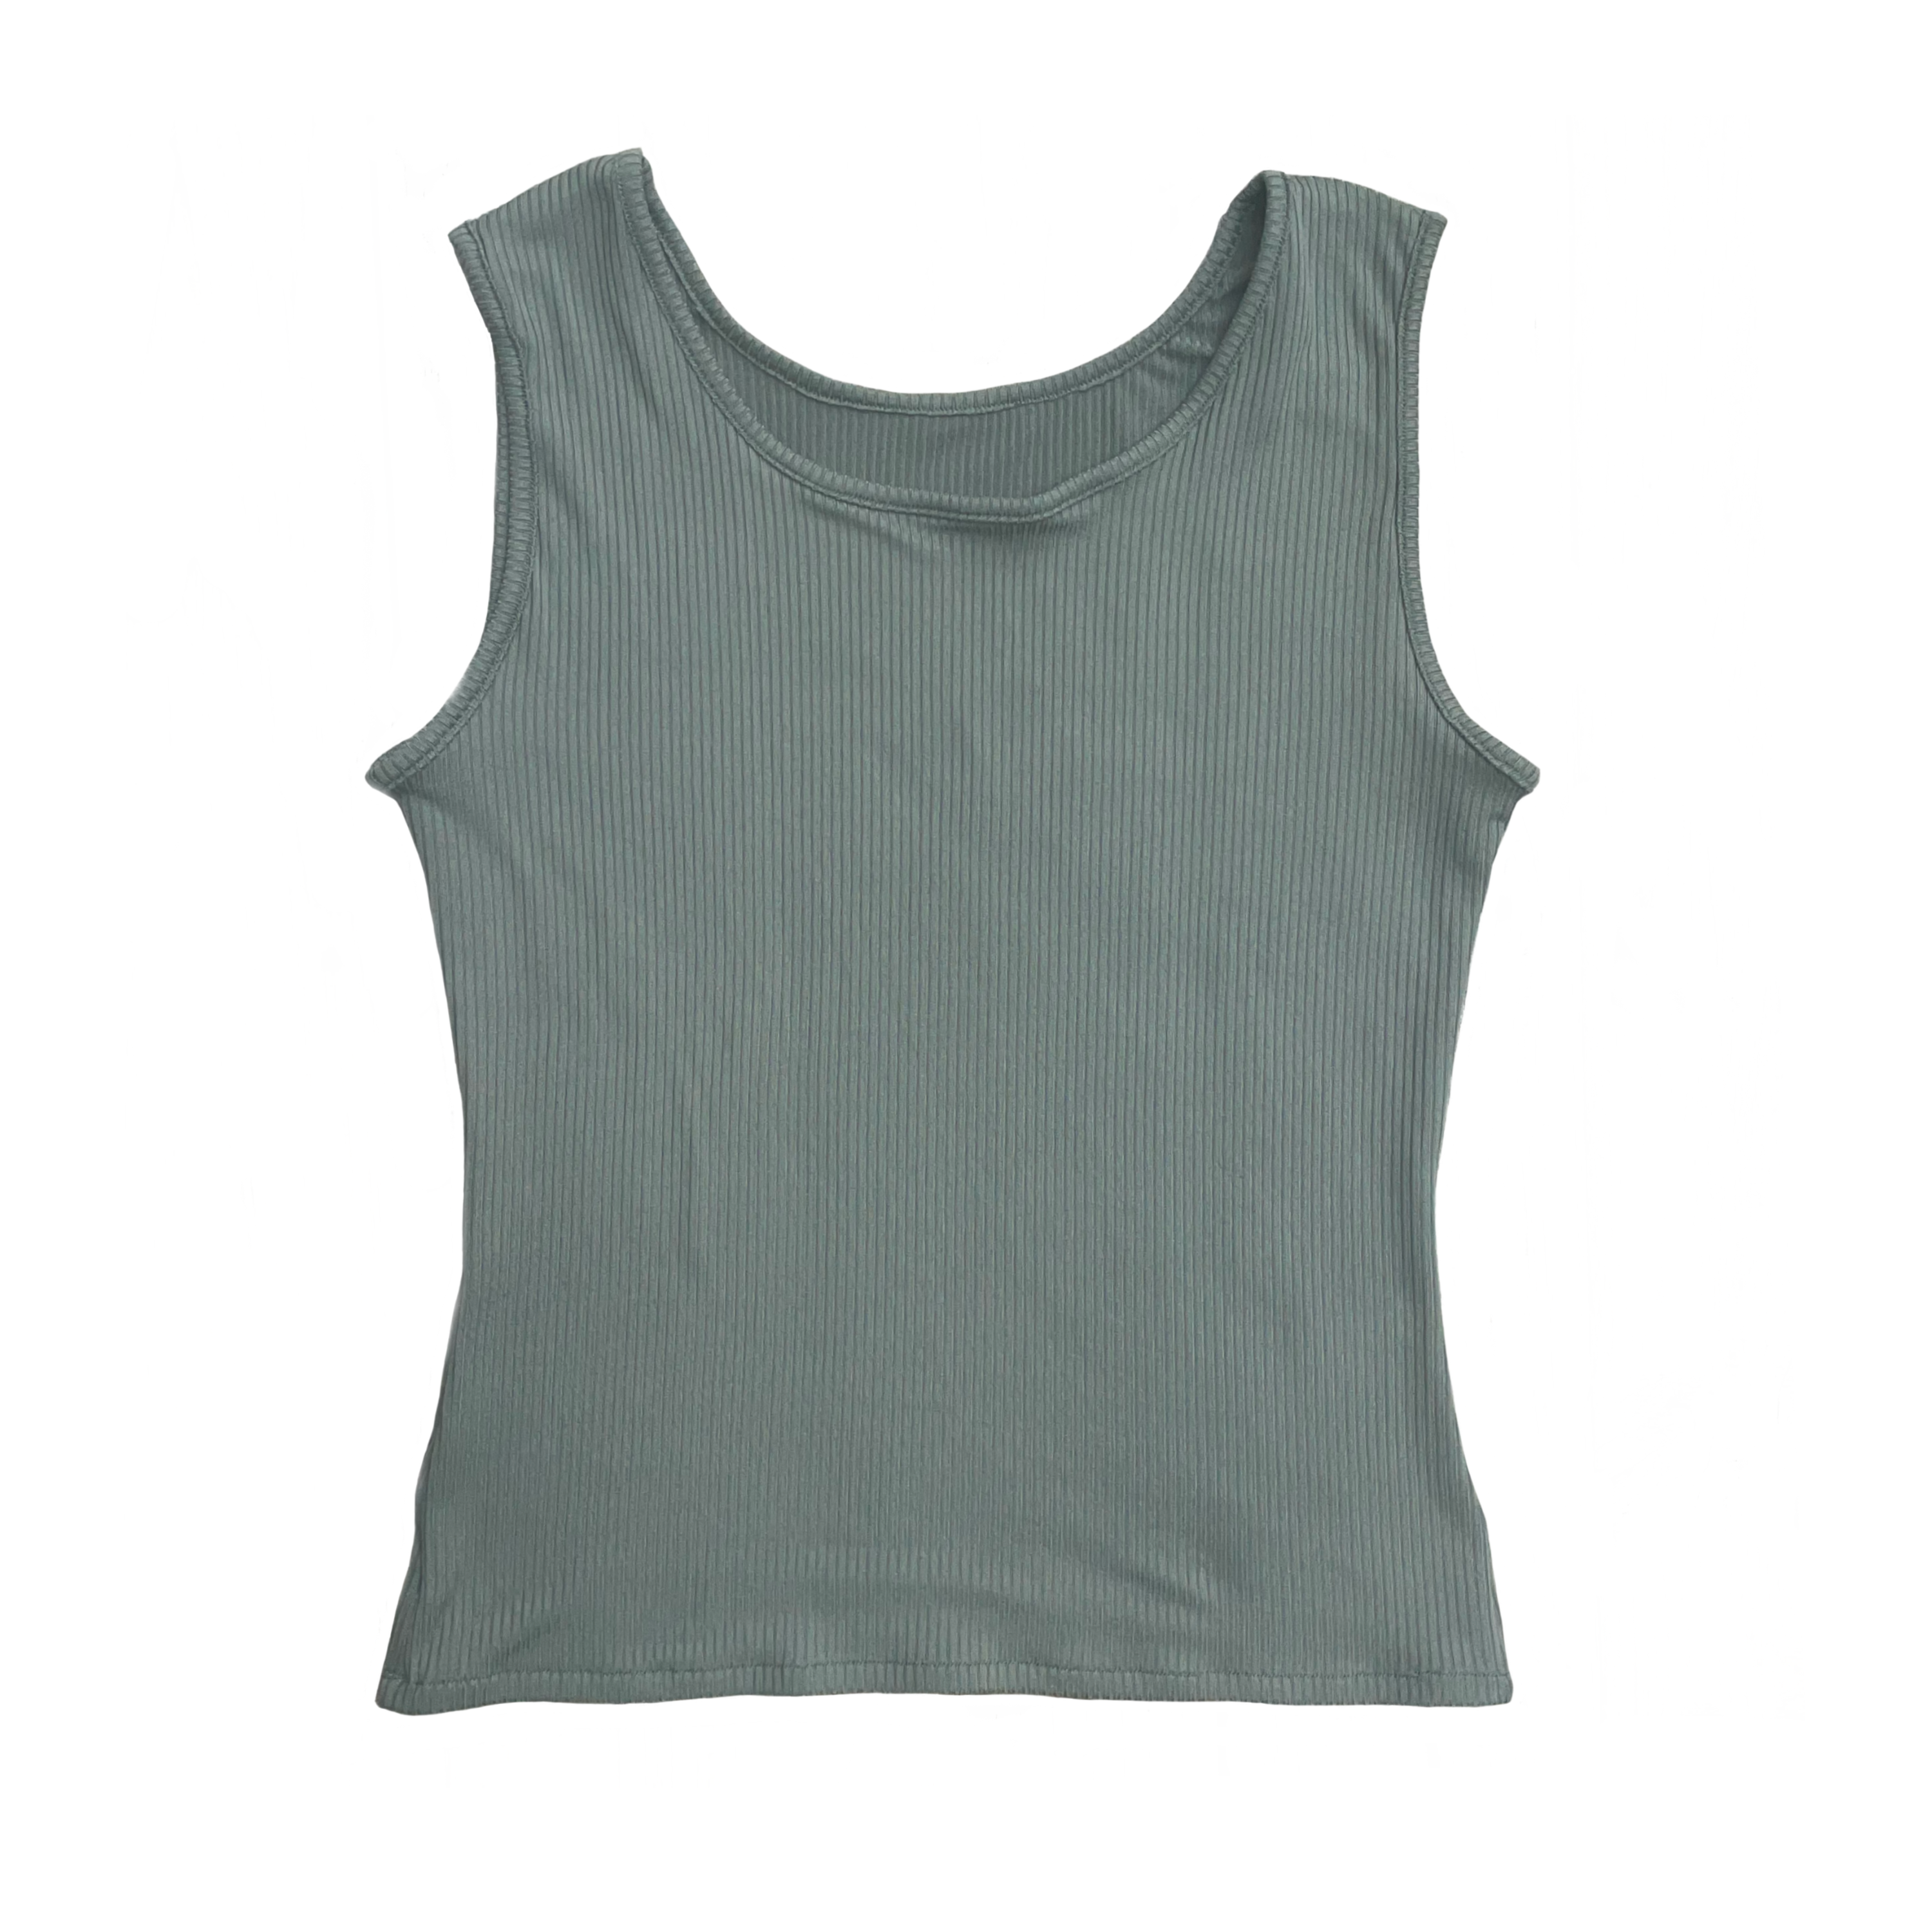 You are currently viewing Basic tank top